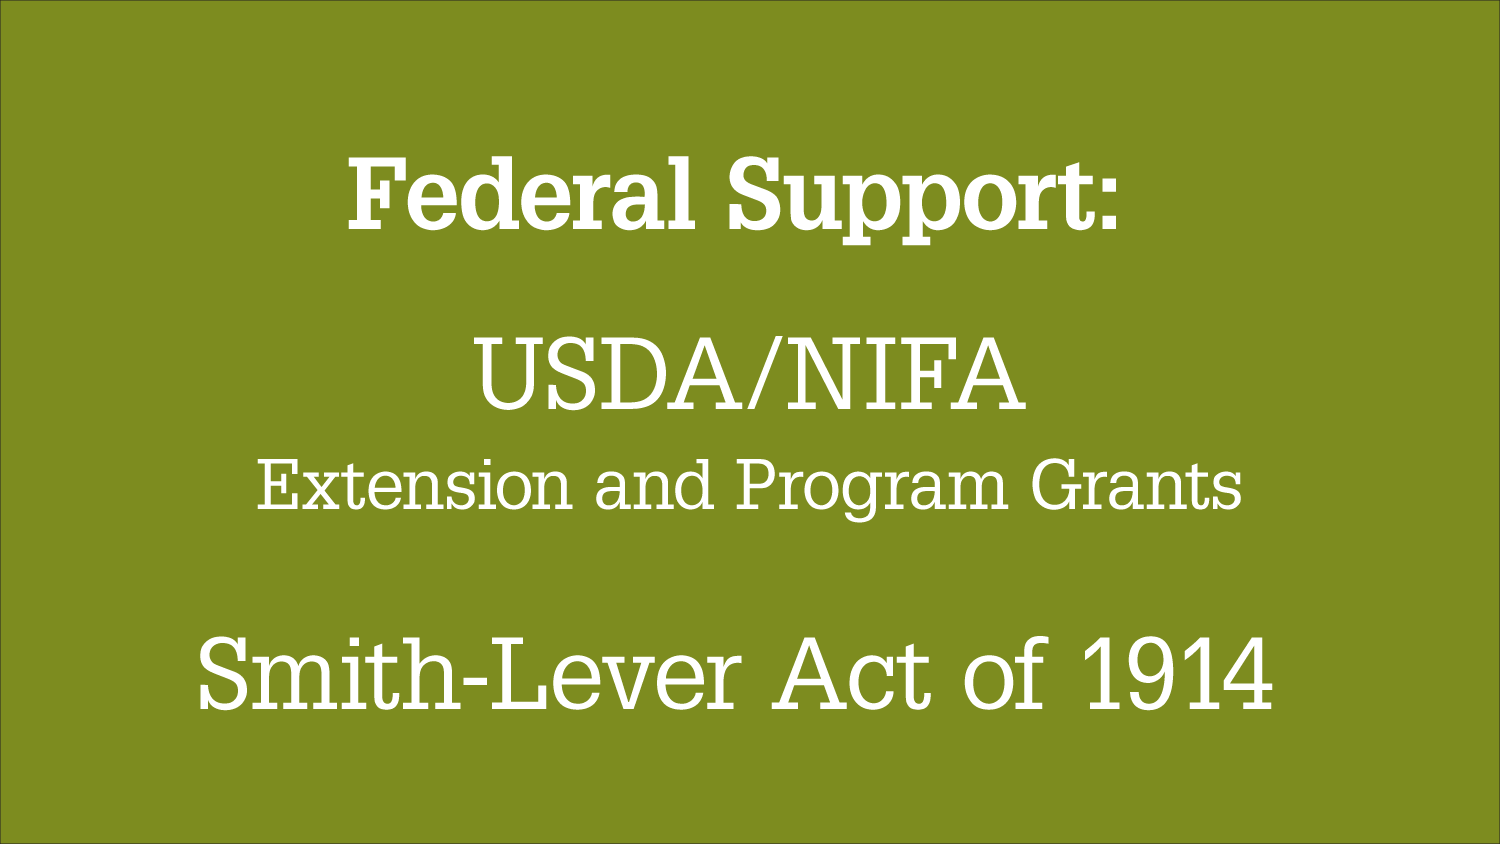 "Graphic Headline: ""Federal Support: USDA/NIFA Extension and Program Grants, Smith-Lever Act of 1914"